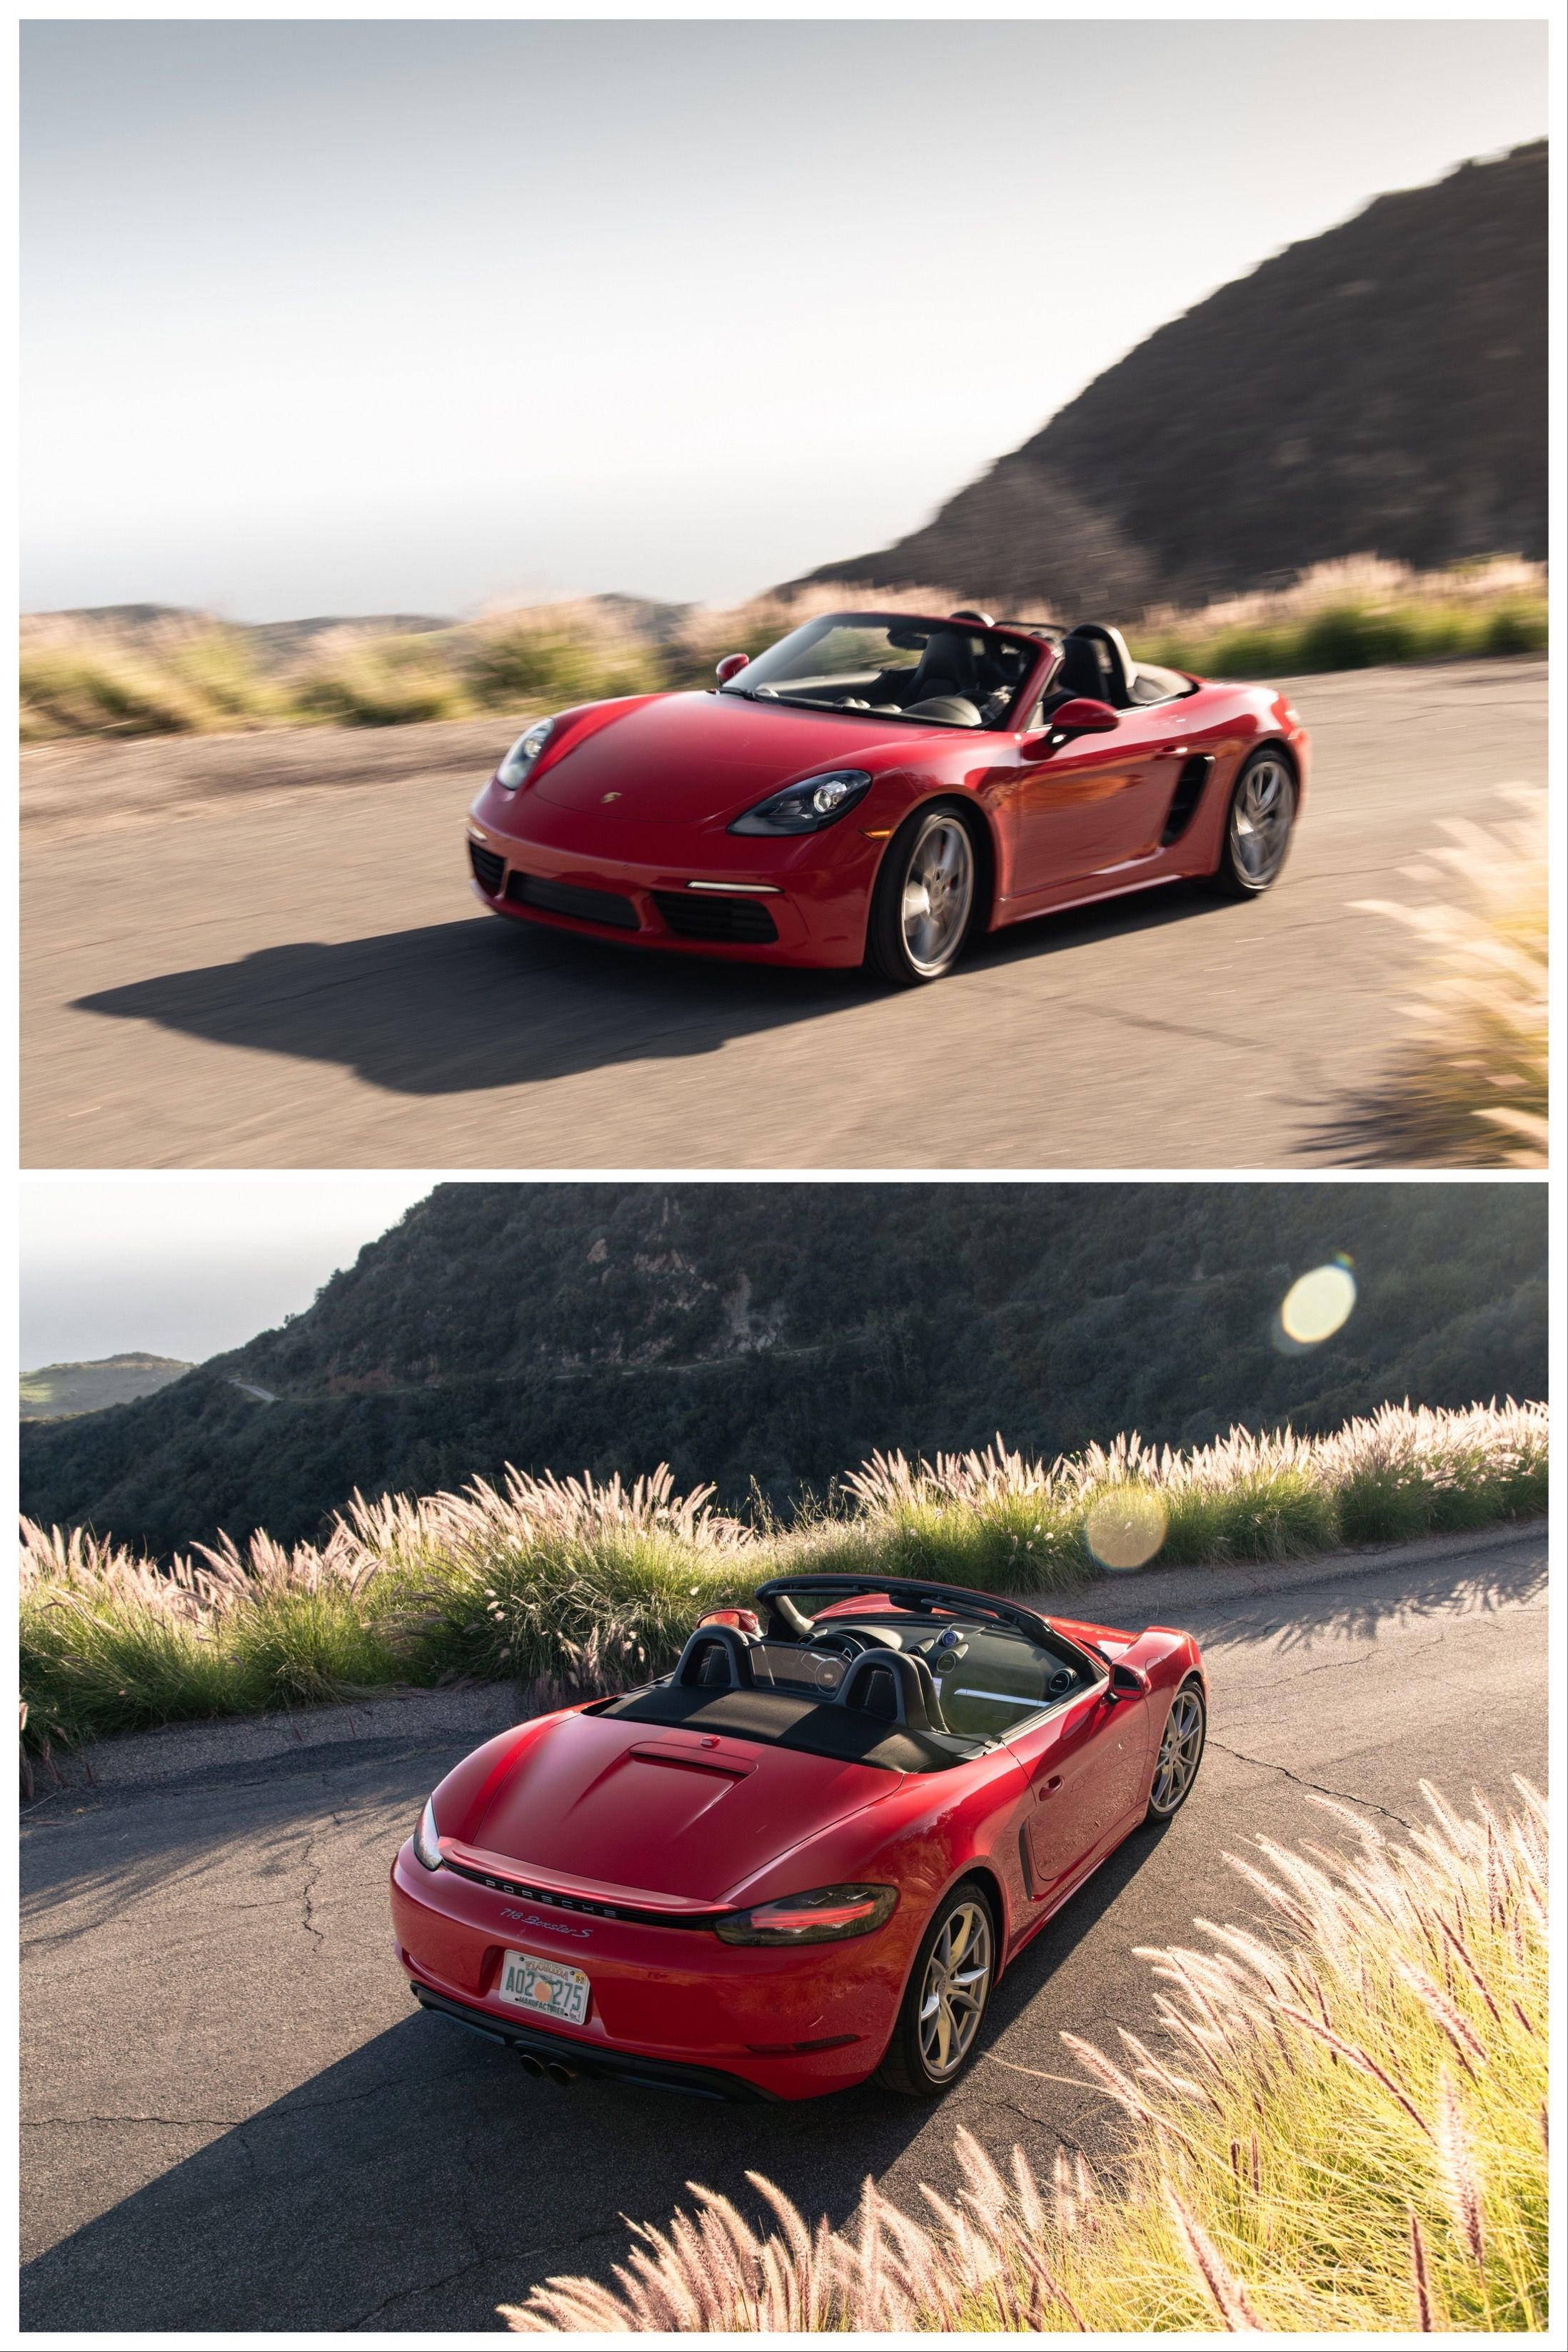 The 2020 Porsche 718 Boxster S is the sports car